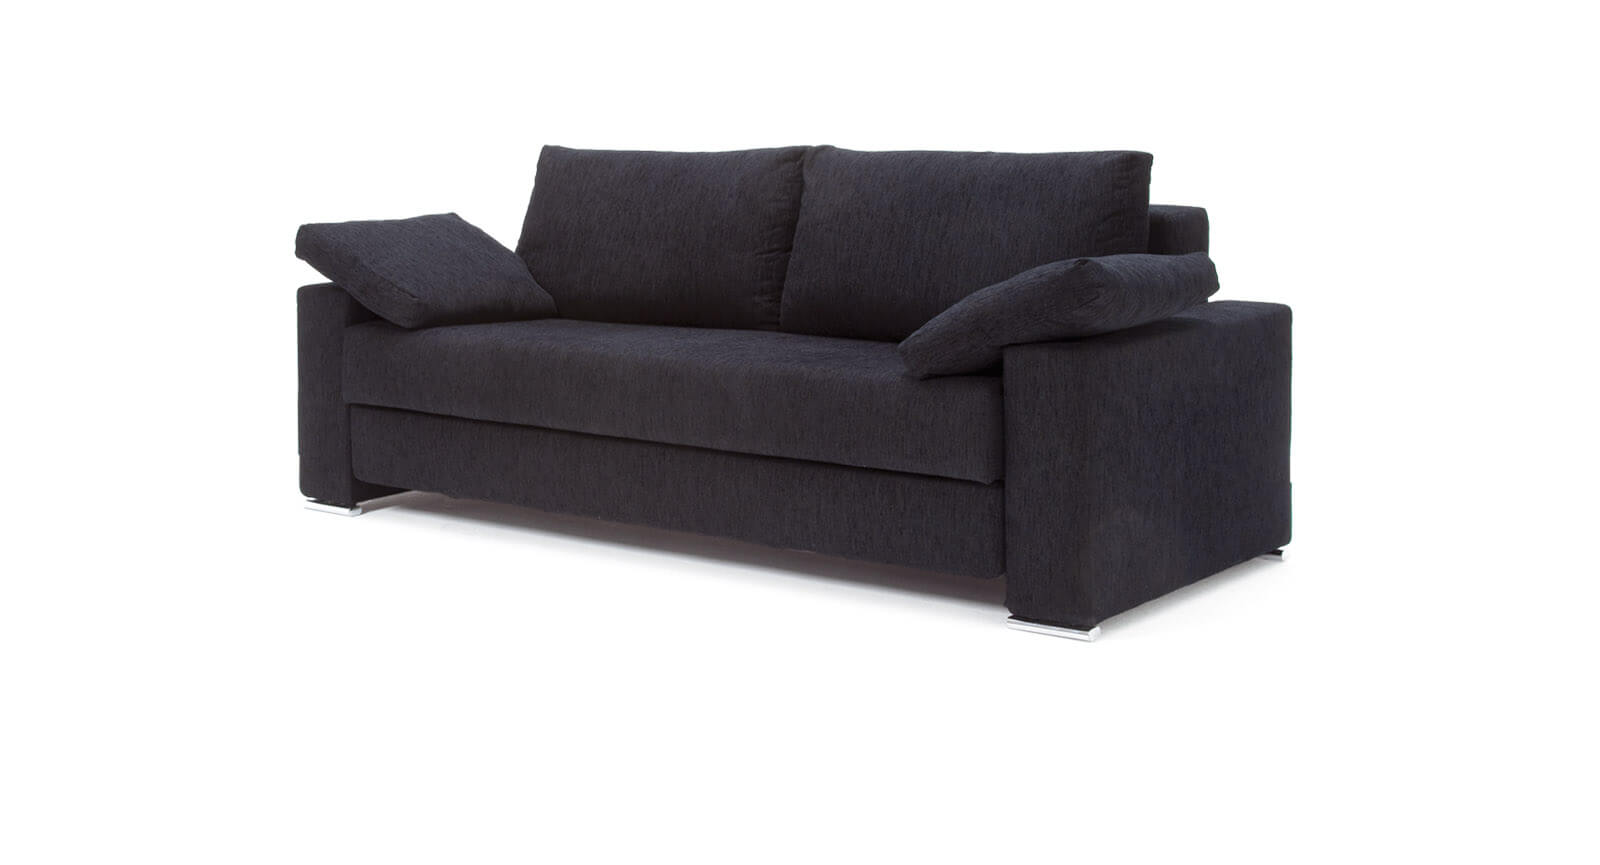 schlafsofa loop von franz fertig. Black Bedroom Furniture Sets. Home Design Ideas